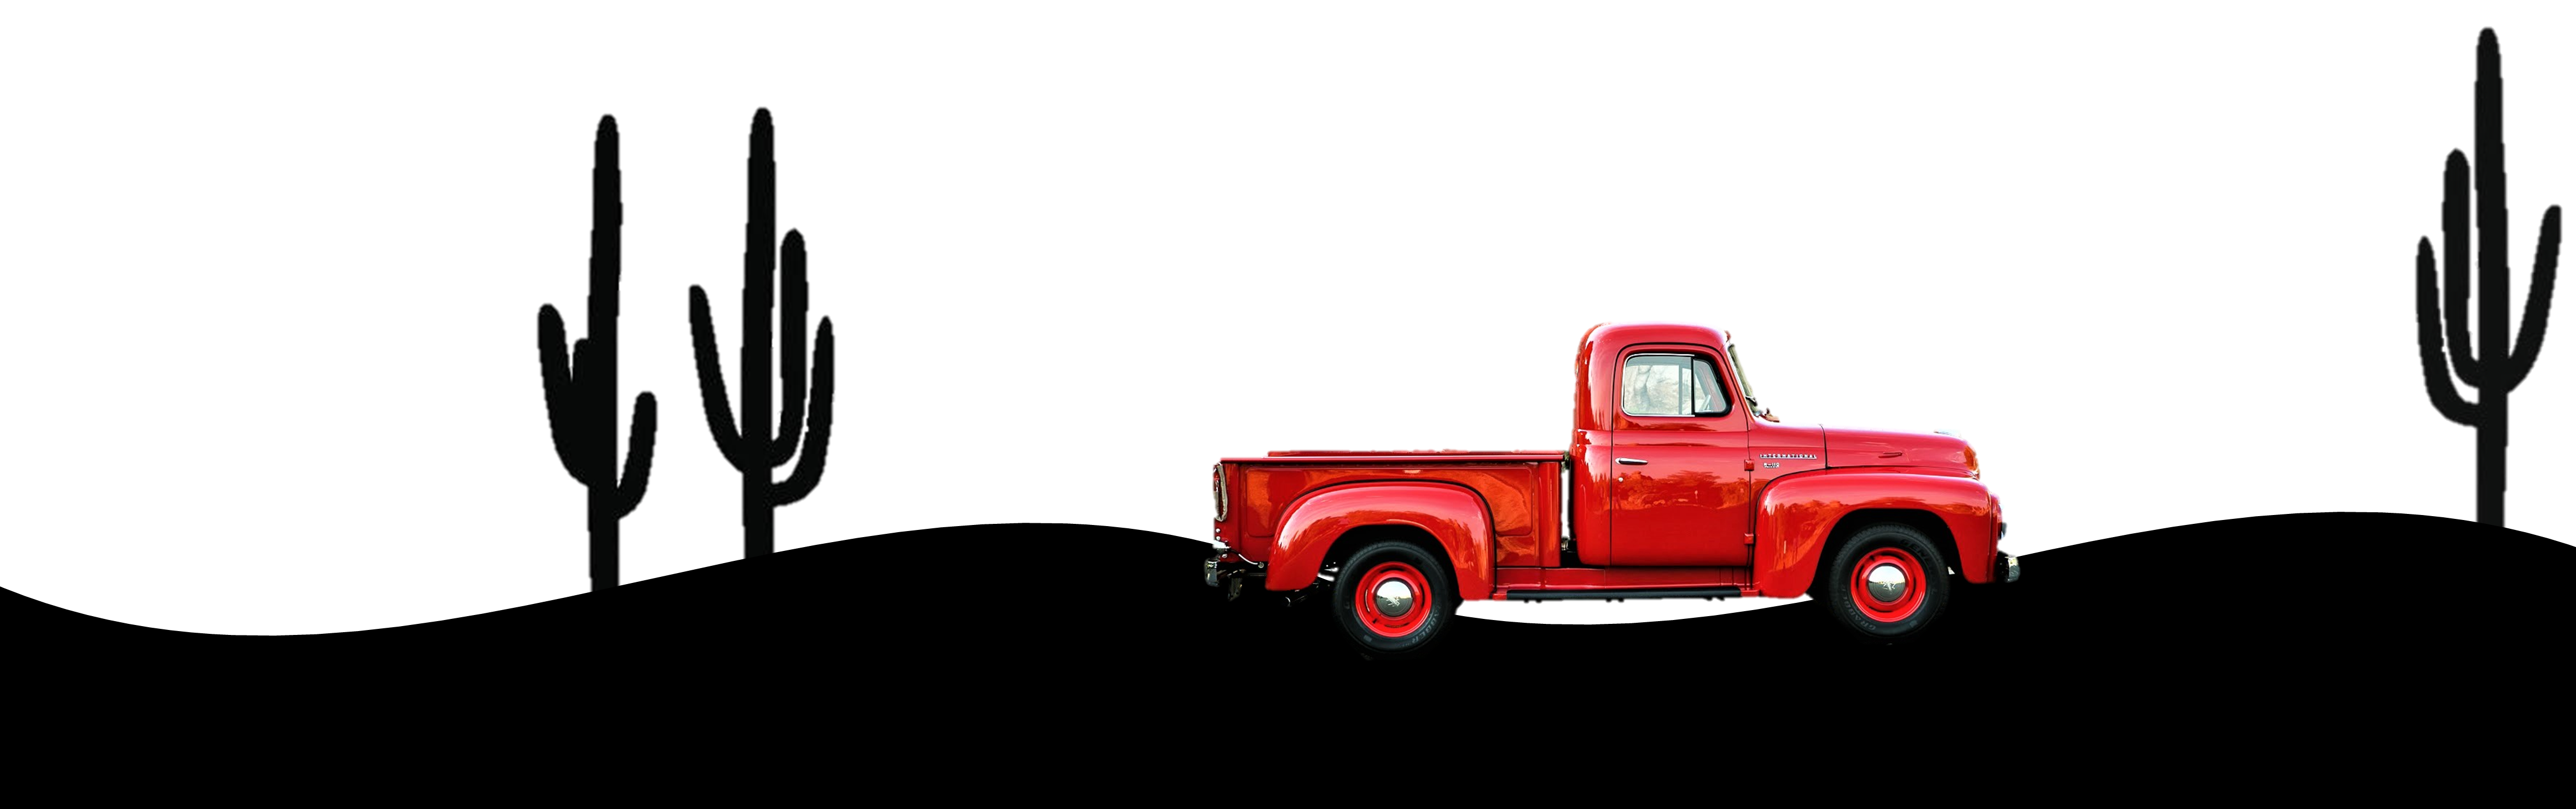 red truck image